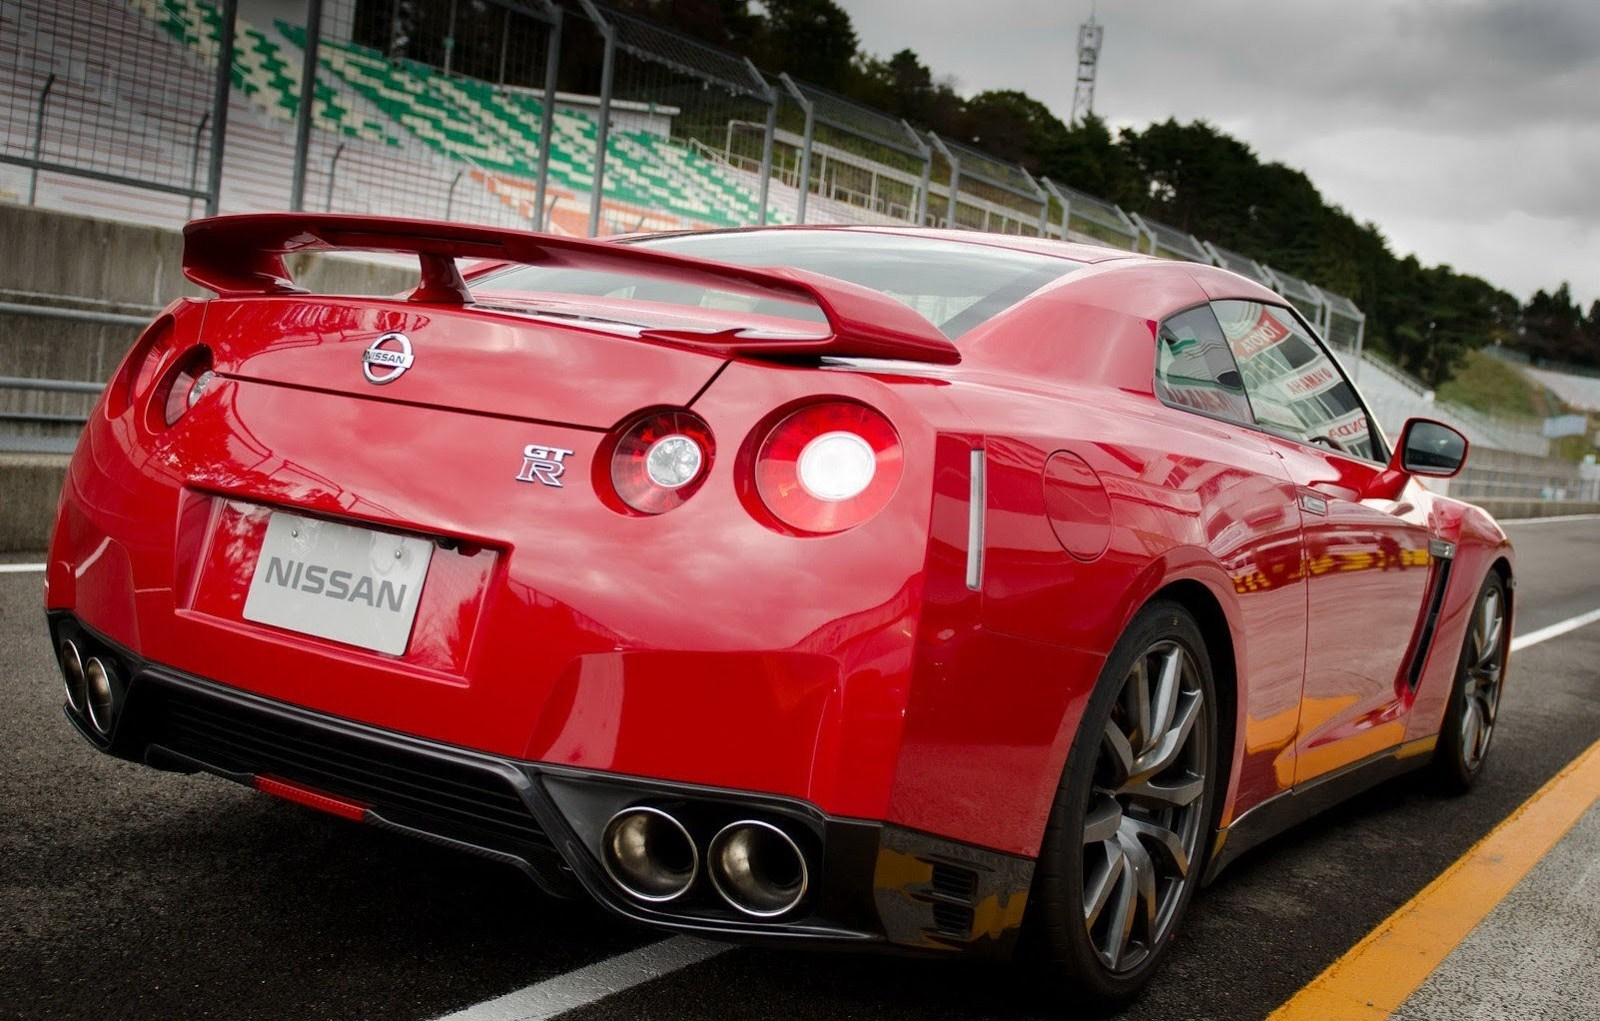 Nissan Gtr 2 Cool Car Wallpaper Carwallpapersfordesktop Org